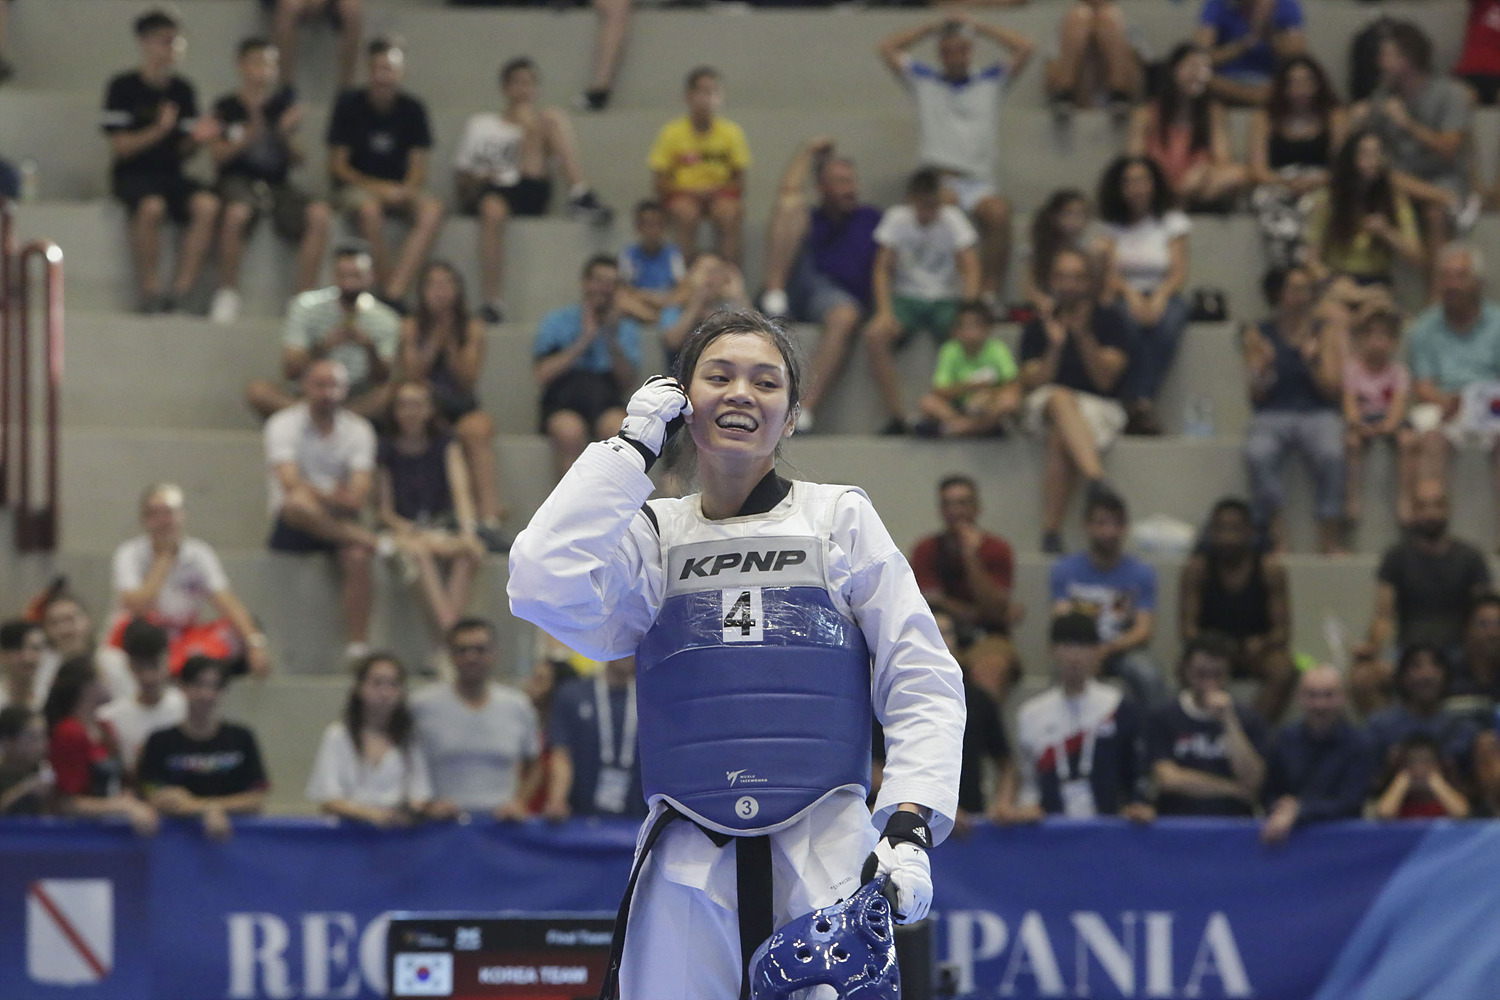 TAEKWONDO 13-07-2019 - FINALI - PHOTO POOL FOTOGRAFI UNIVERSIADE 2019